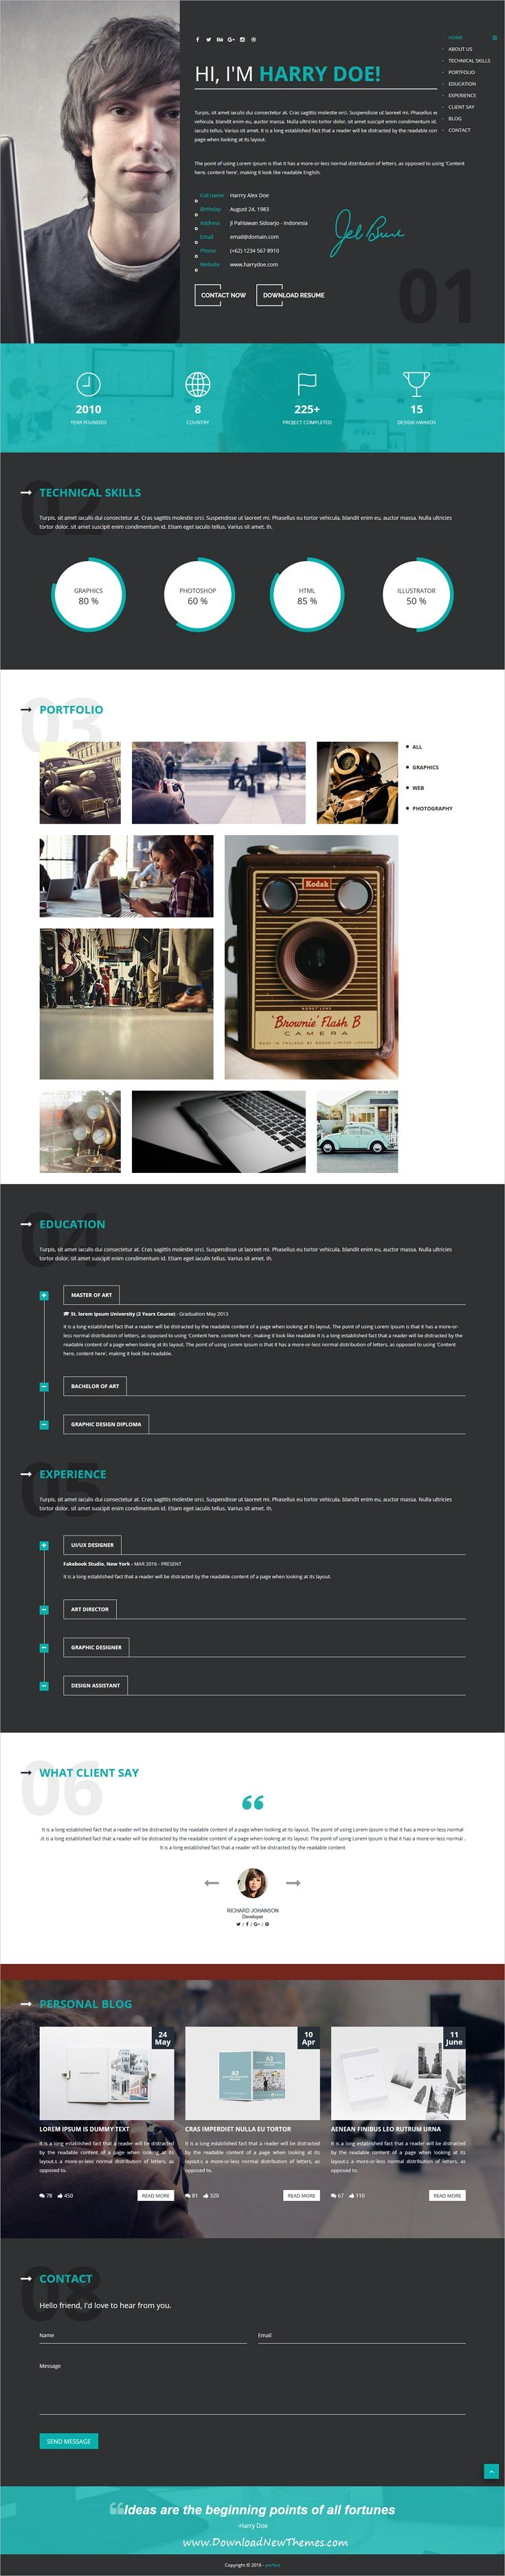 Perfect is clean and modern design multipurpose responsive #HTML template for creative #resume #CV and #portfolio showcase website with 45+ niche homepage layouts download now..